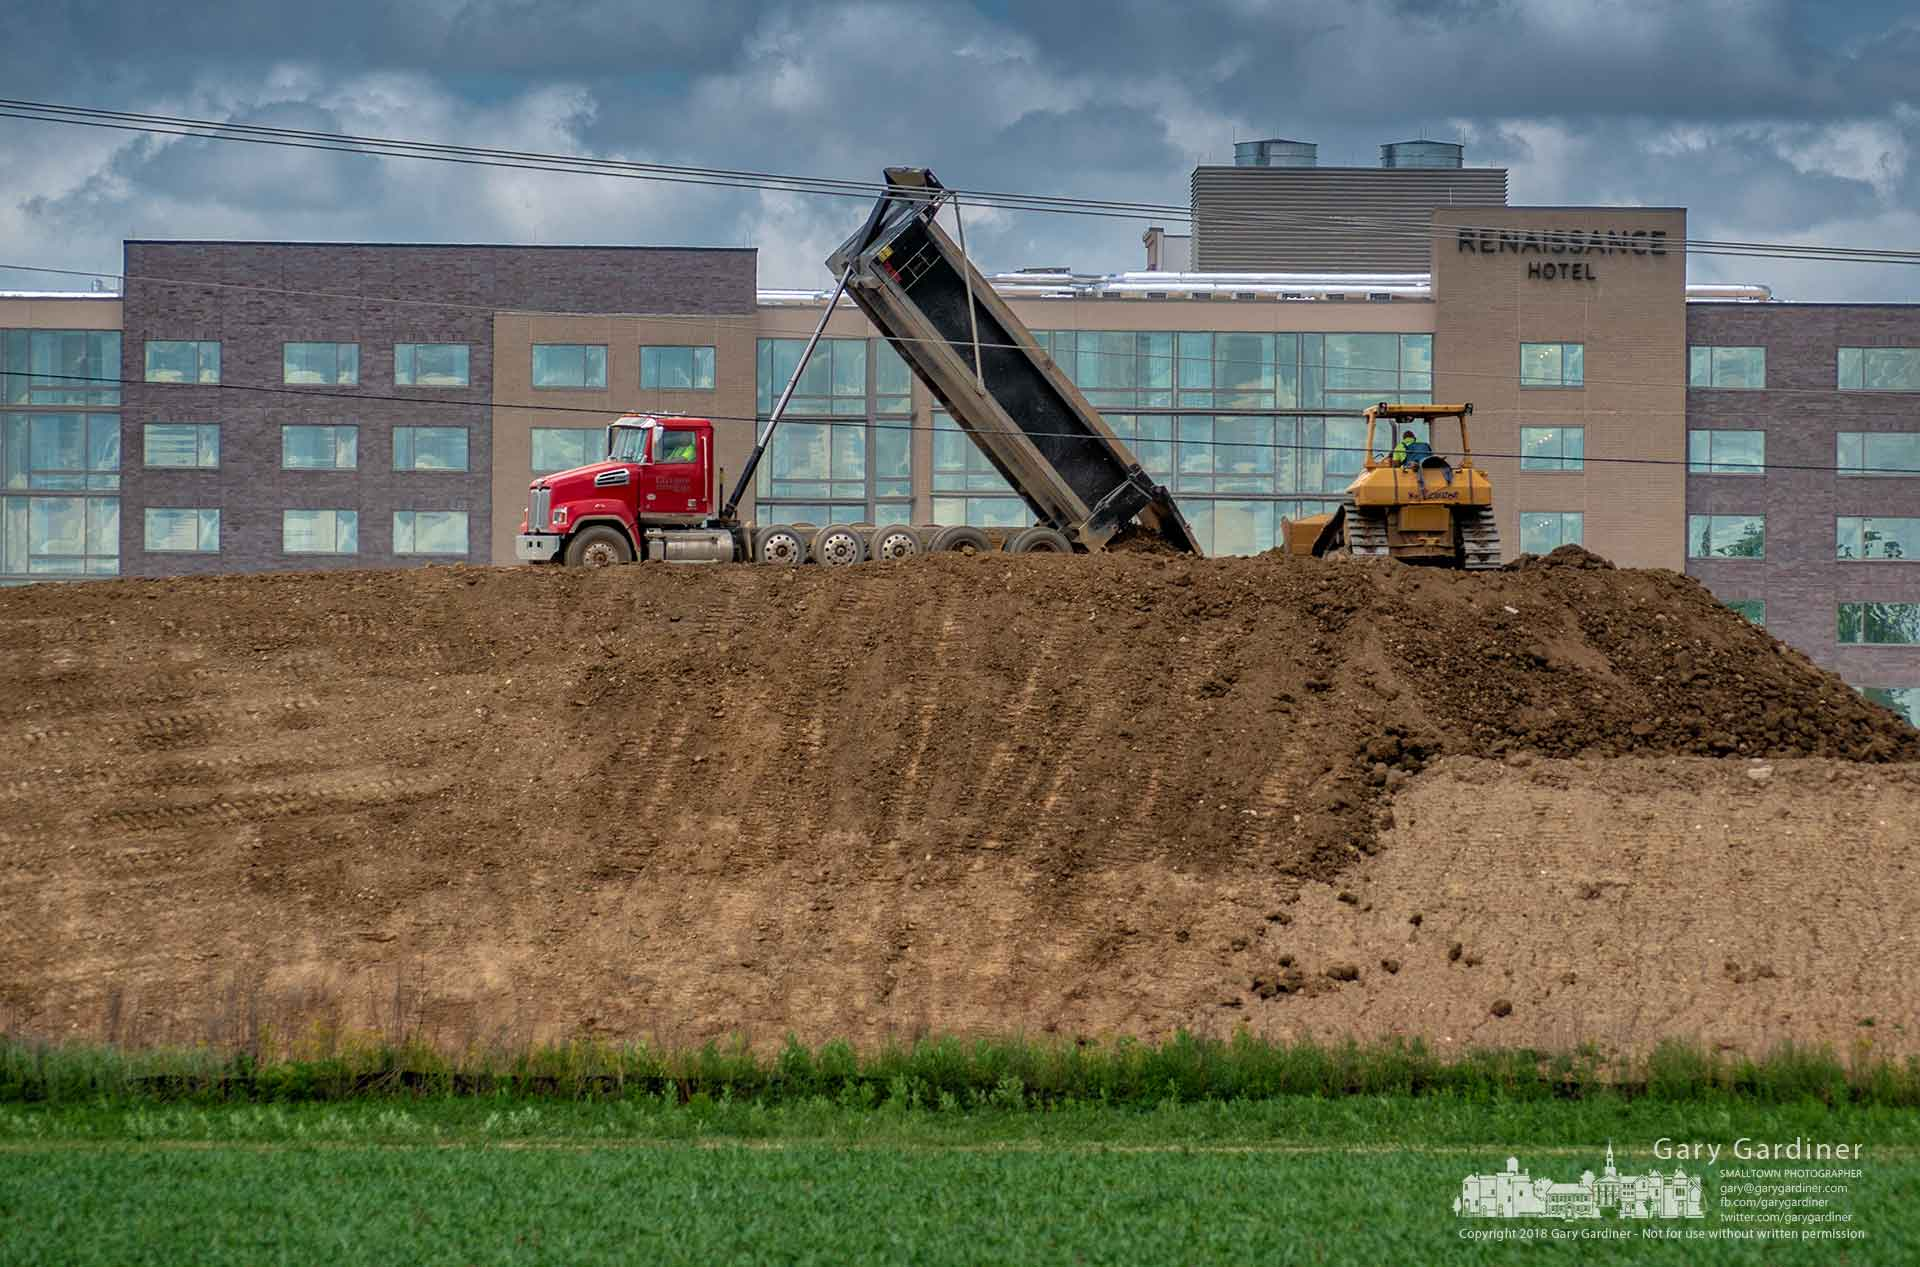 A truck dumps another load onto a farm field being temporarily used to store dirt removed from an office building construction project across from the Renaissance Hotel in Westerville. My Final Photo for May 31, 2018.